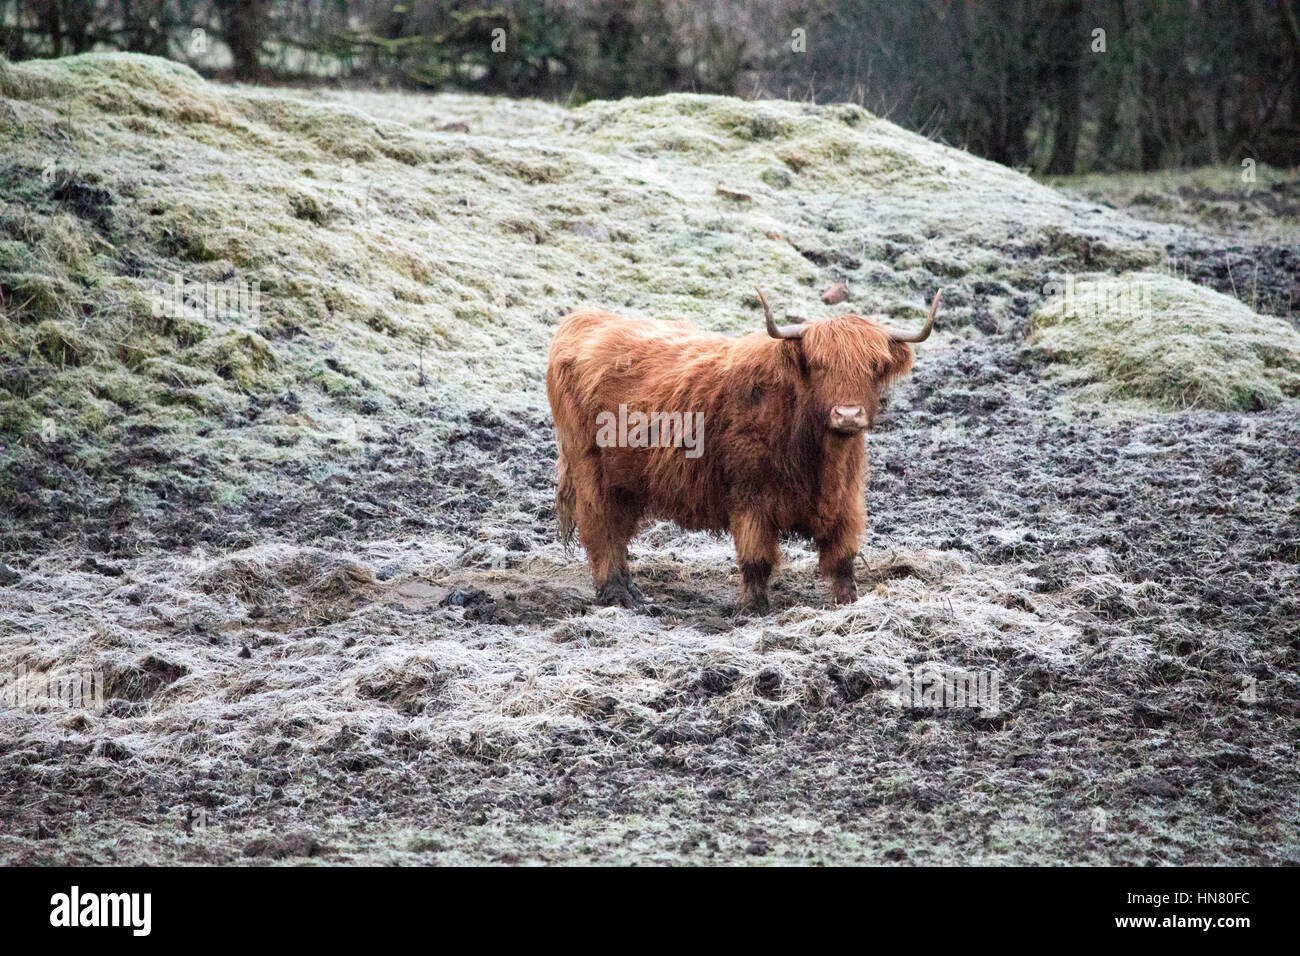 Highland cattle standing in a frozen muddy field or paddock on  rural isolated farm near Moel-y-Crio in Flintshire, - Stock Image